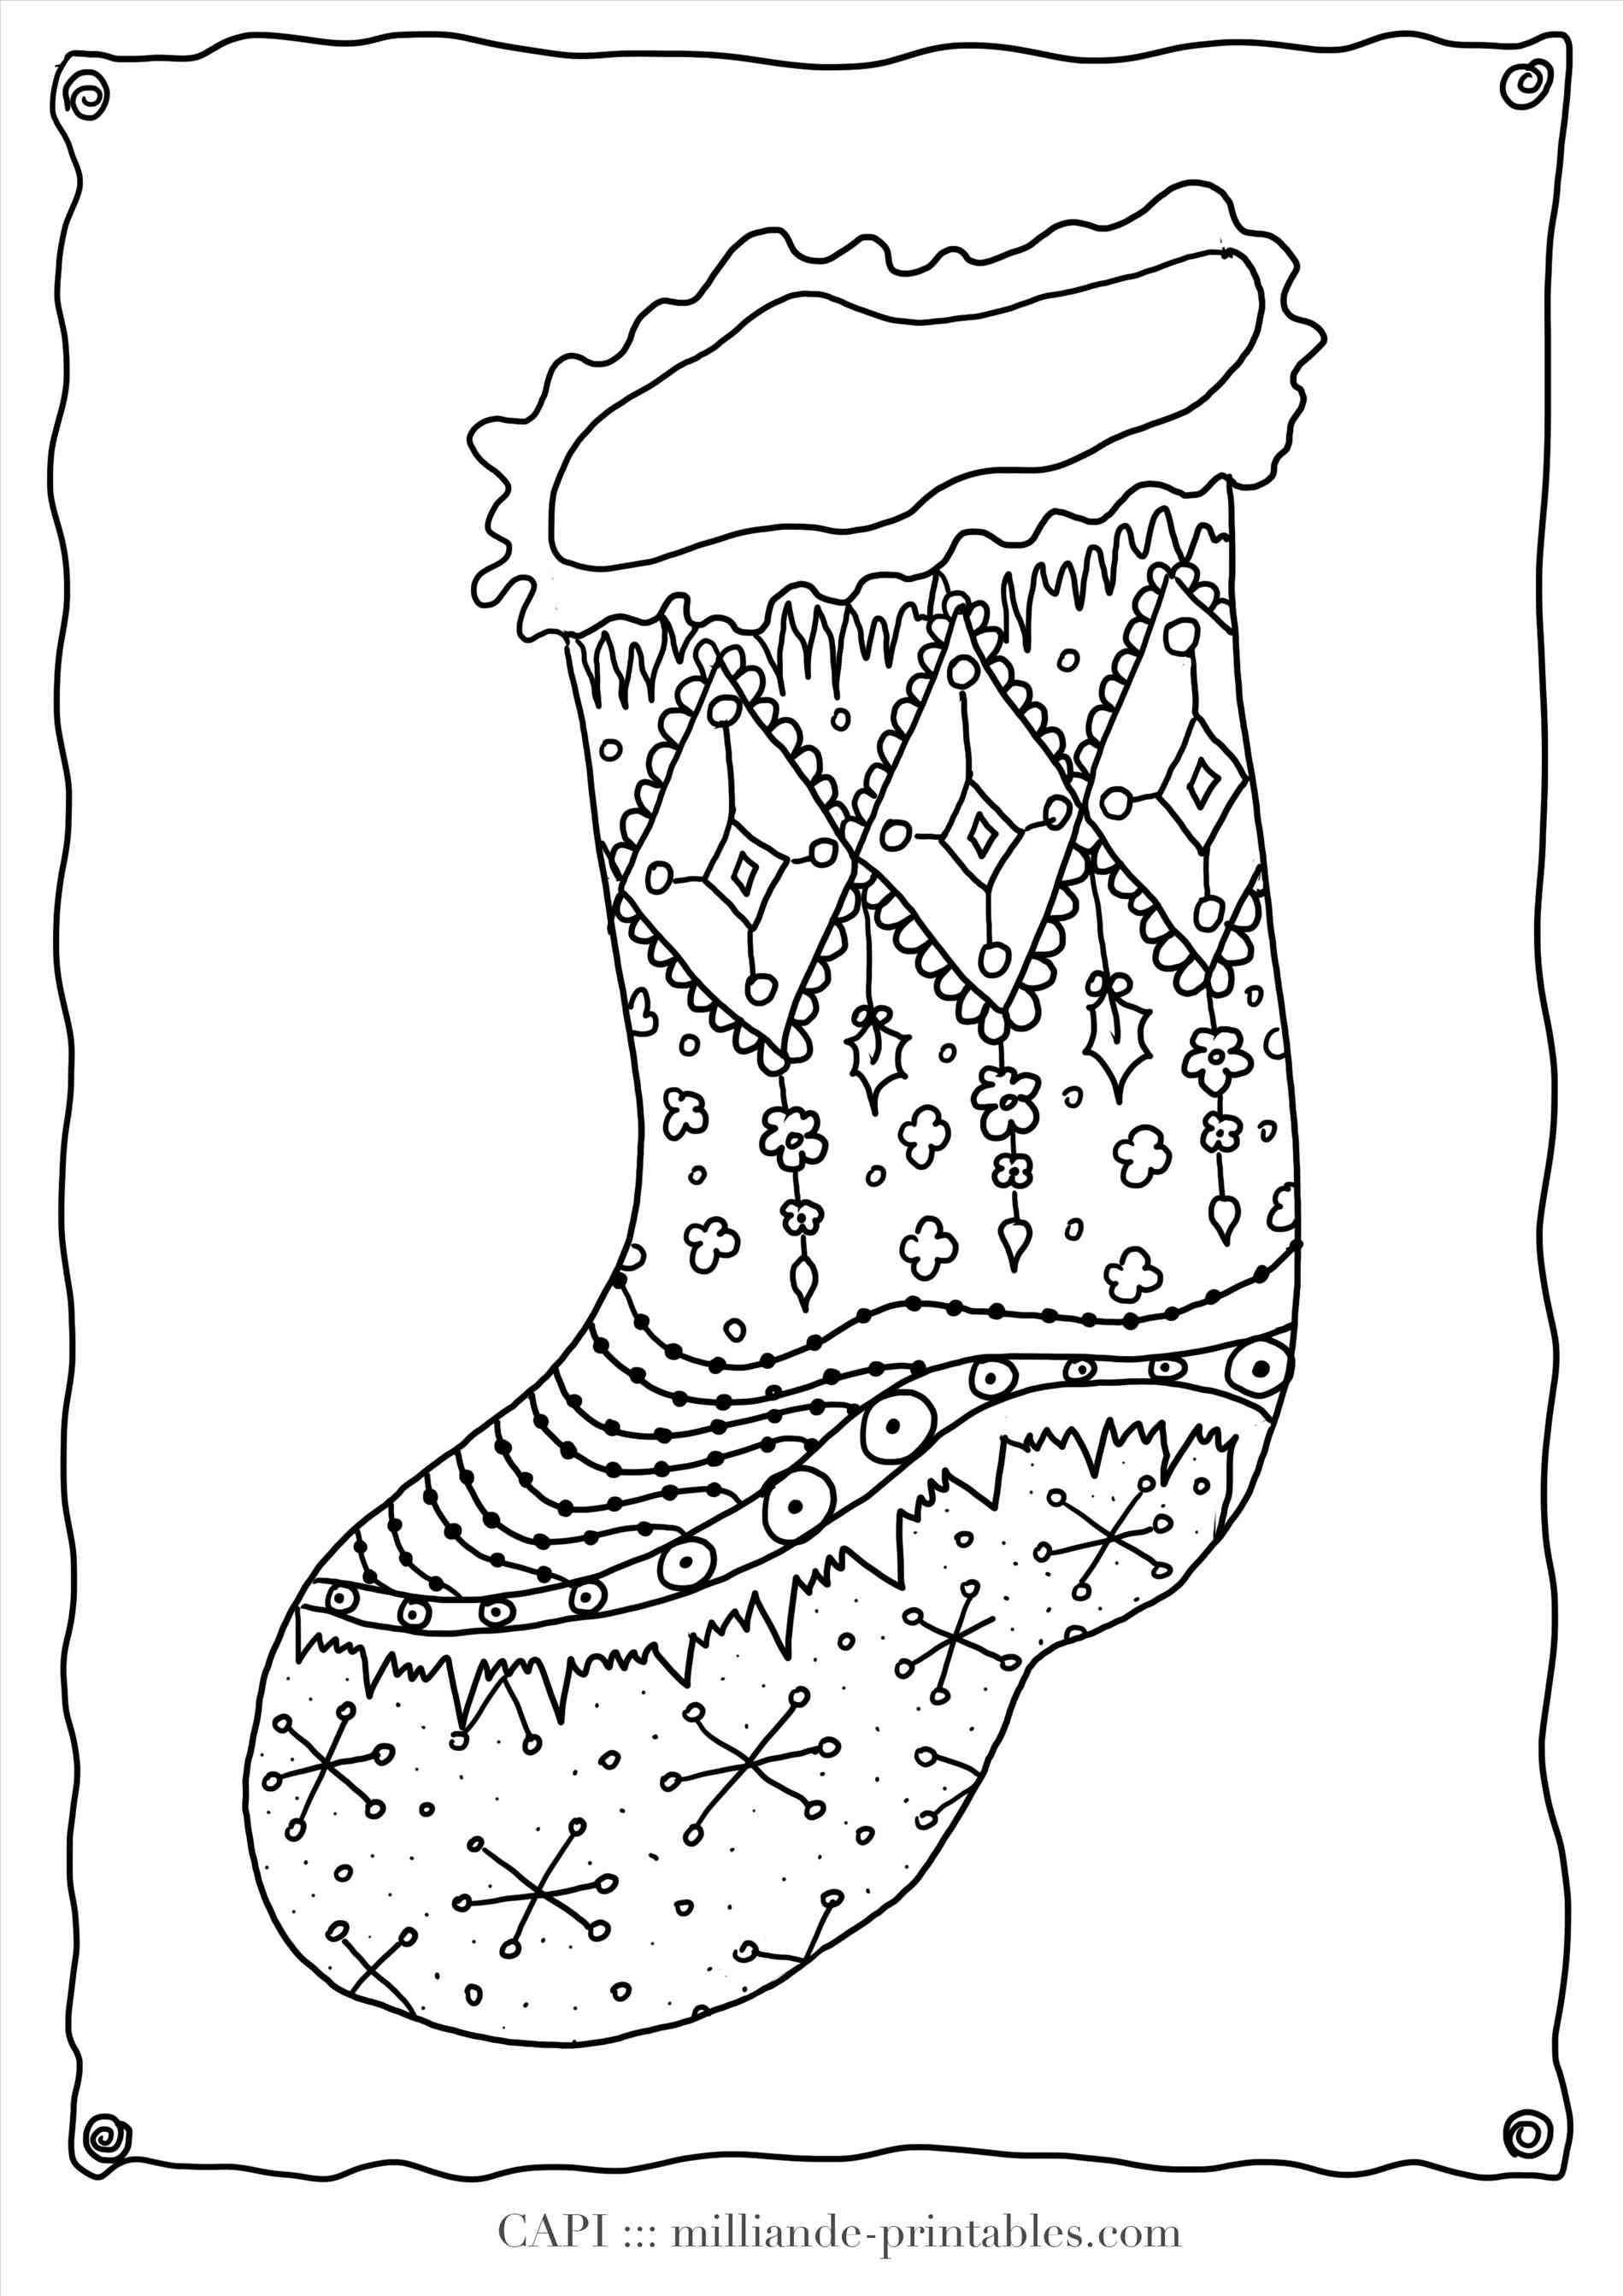 Christmas Stocking Coloring Pages For Adults With New Post Plain Page Xmast Pinterest